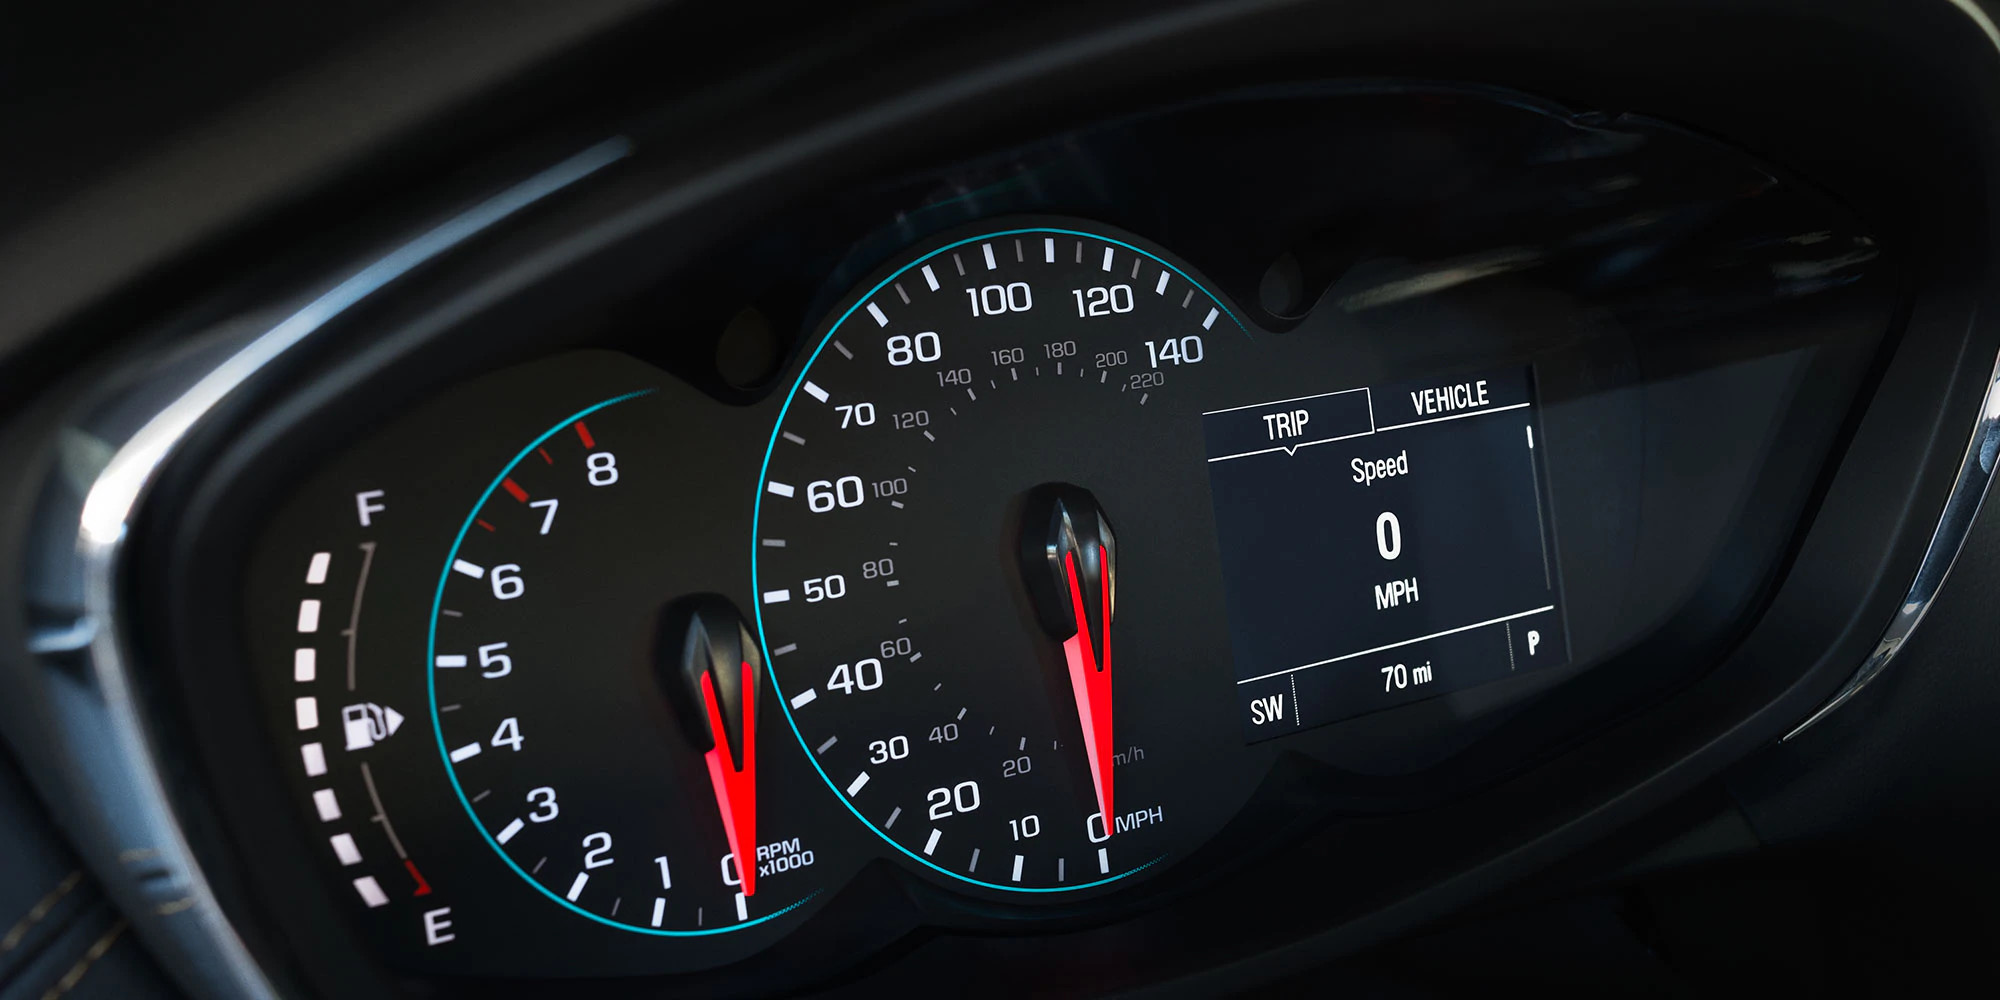 Instrument Panel in the 2020 Trax